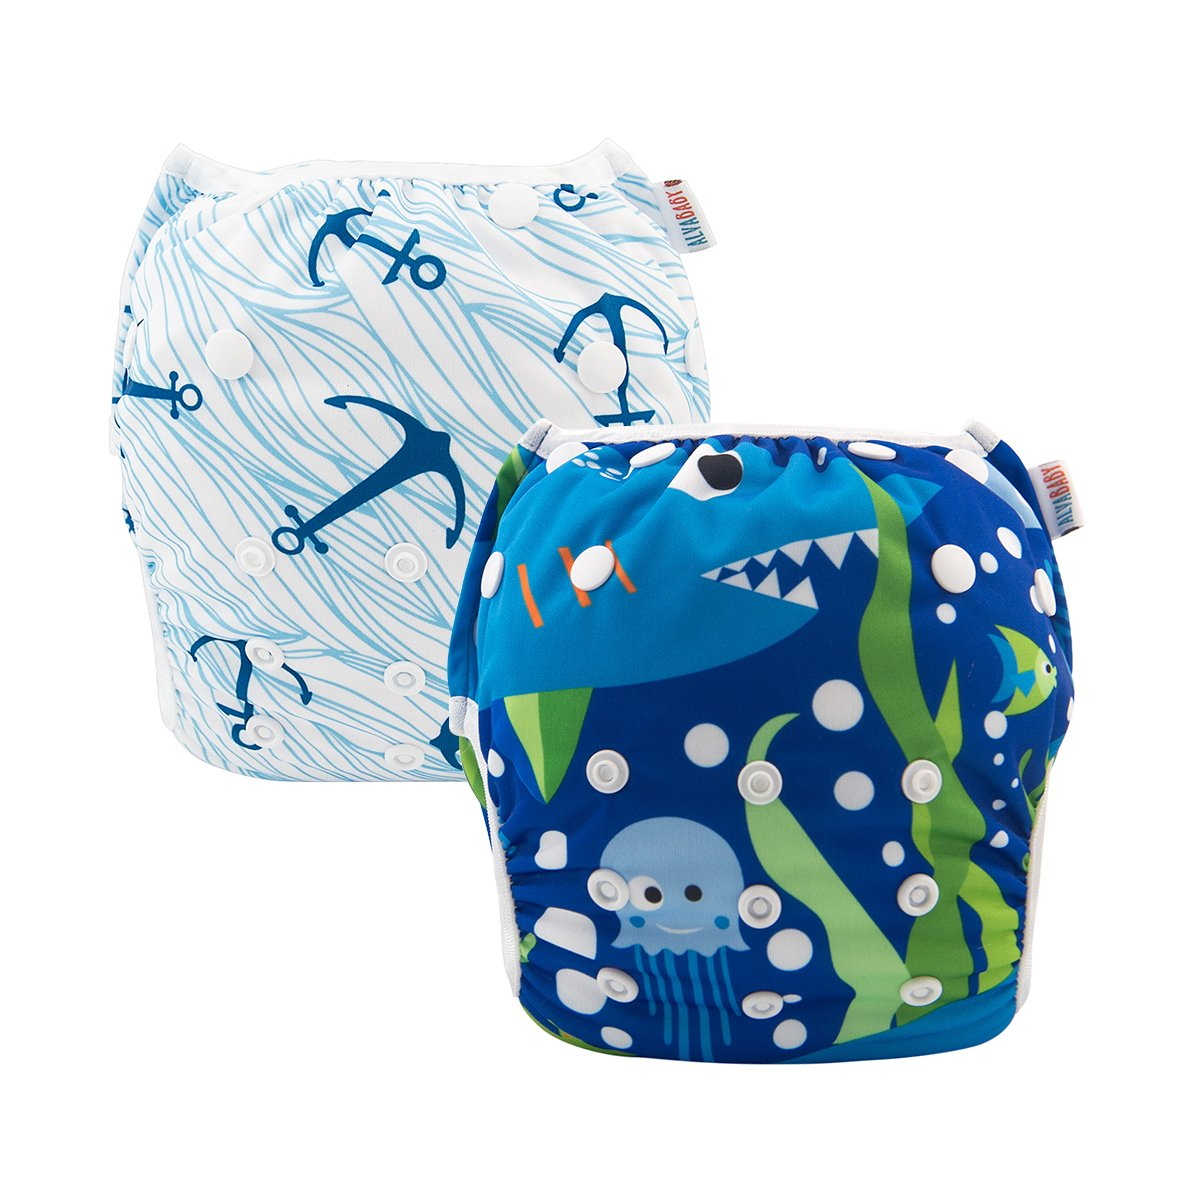 ALVABABY Swim Diapers Reuseable Washable Adjustable 2 PCS Pack One Size YK25-D26-299-CA